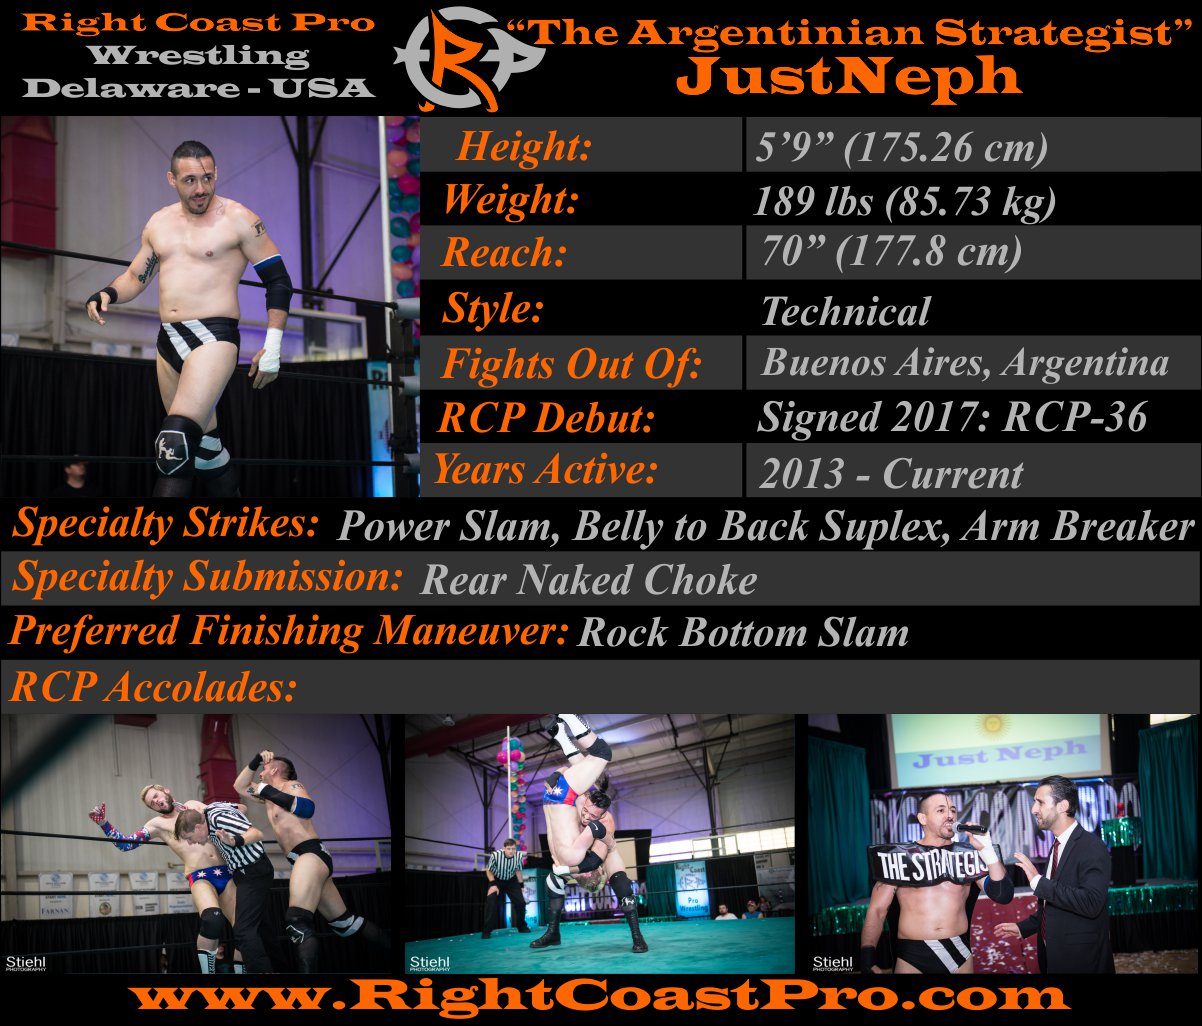 JustNeph Profile RightCoastPro Wrestling